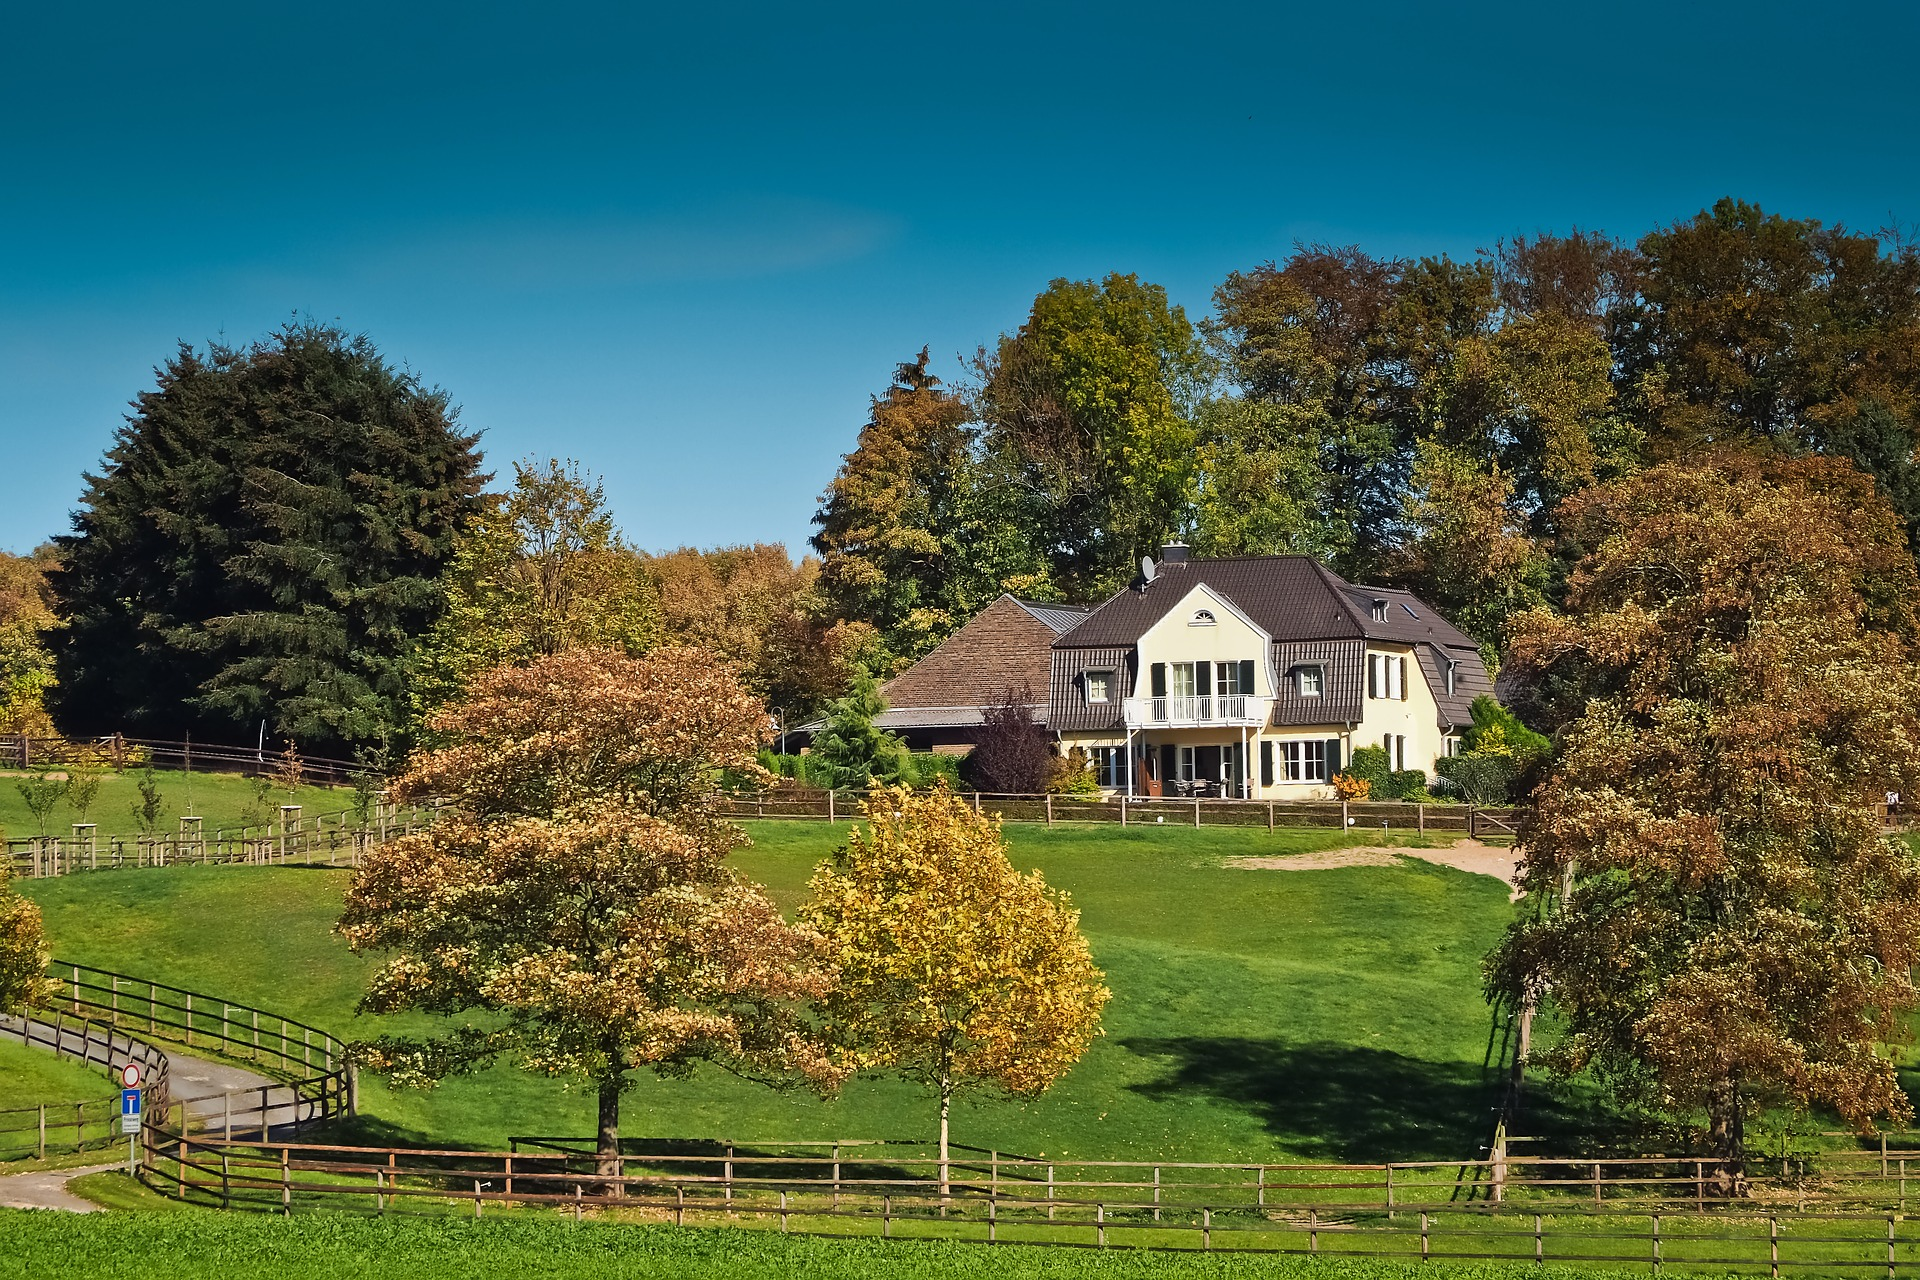 5 Important Factors for Financing A Rural Home or Acreage